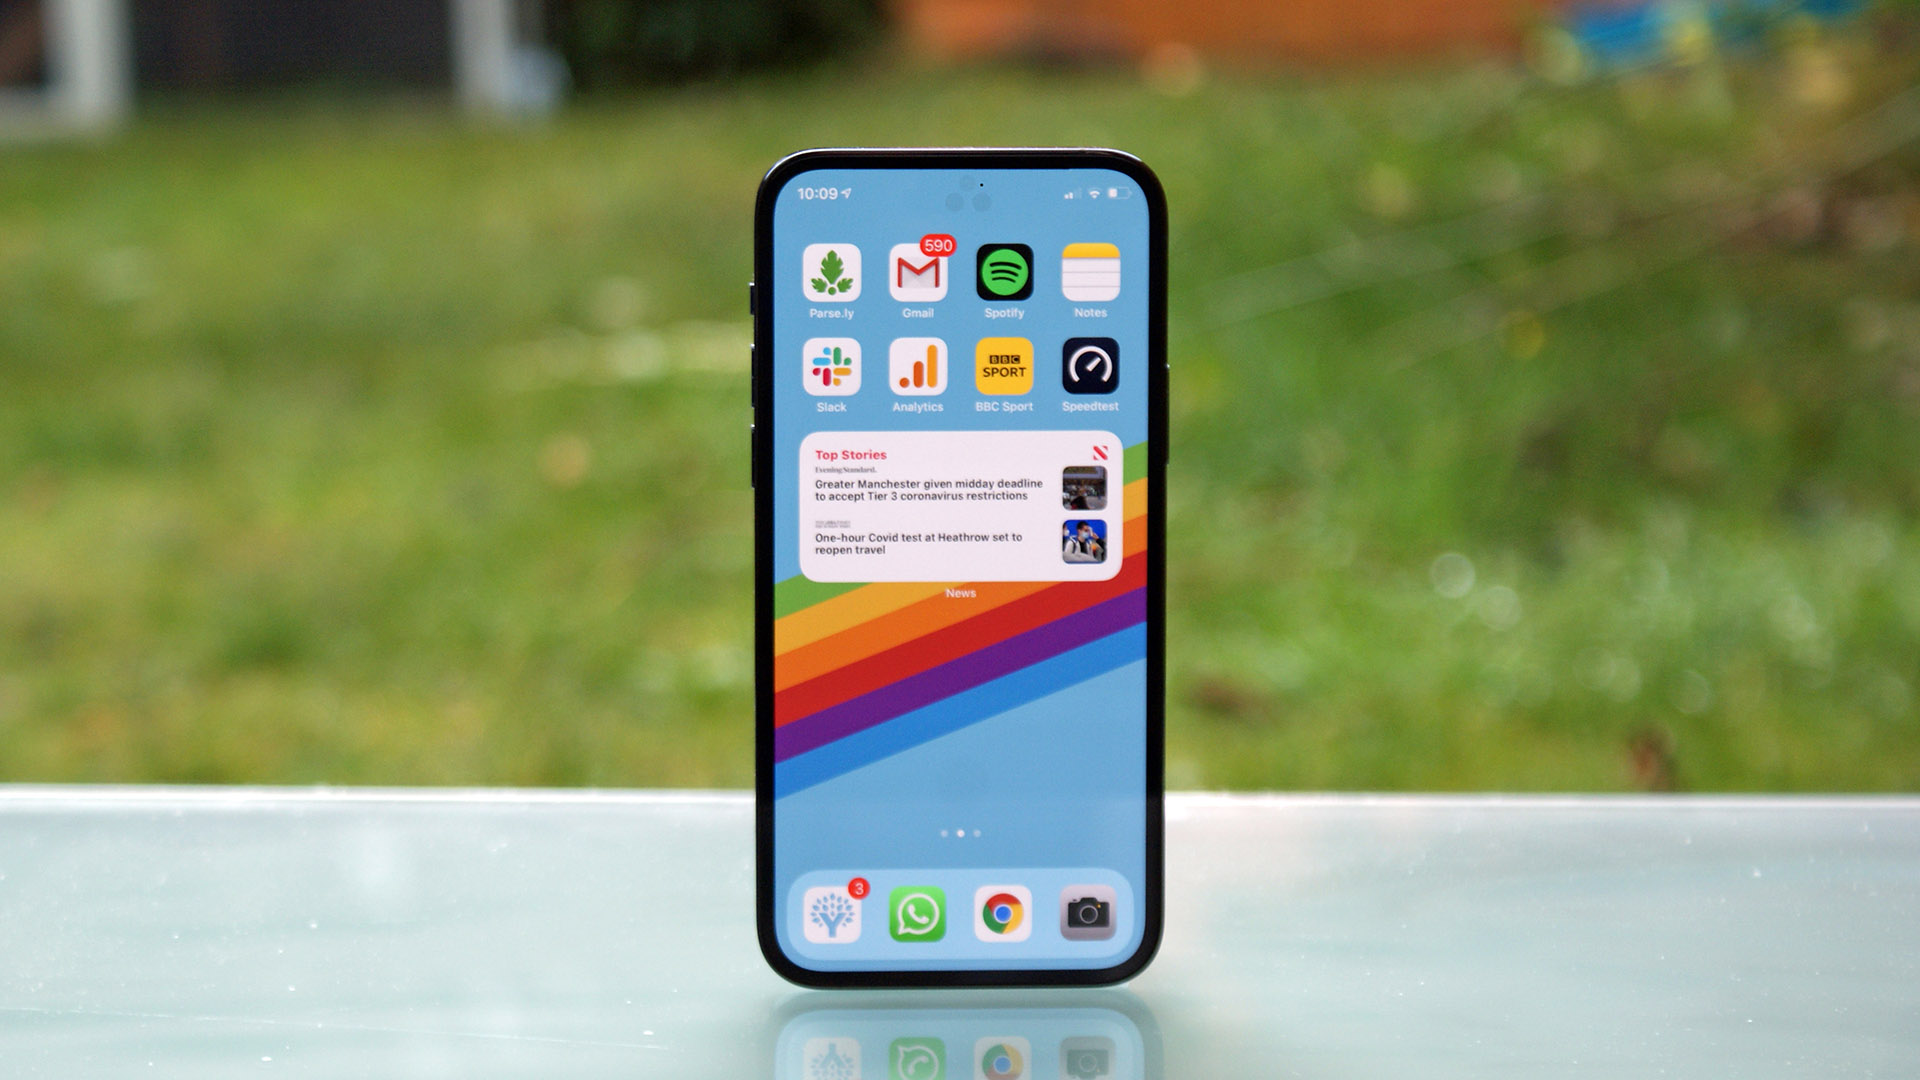 notch-less-iPhone-concept-3